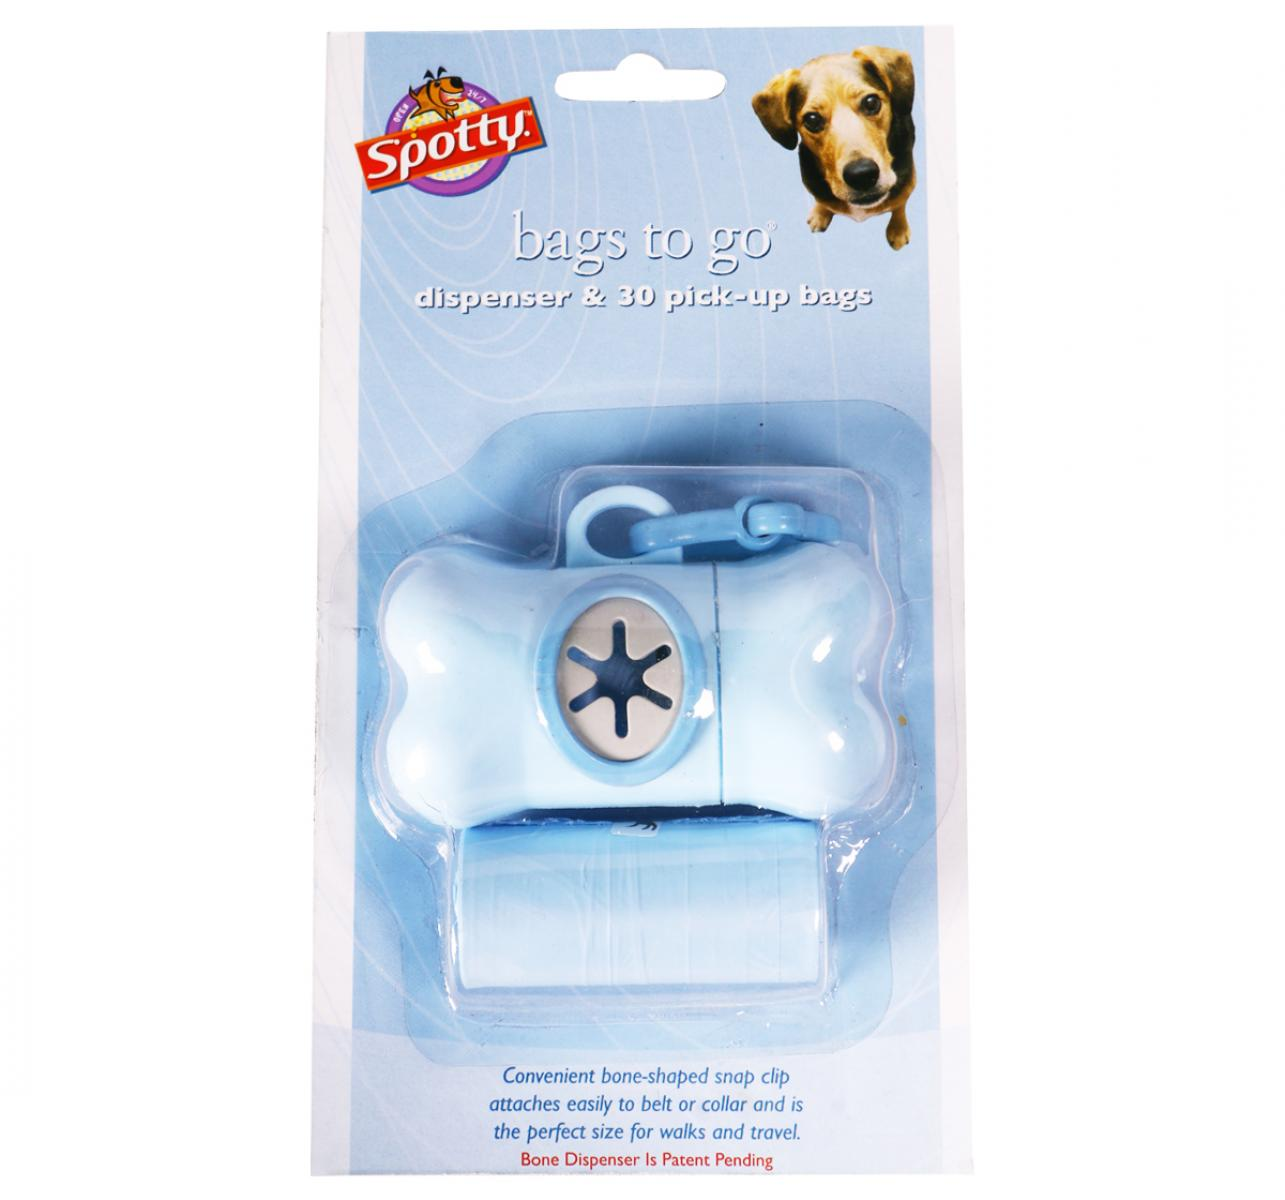 Spotty Bone Shaped Dispenser With Waste Pick-Up Bags - 30 Bags